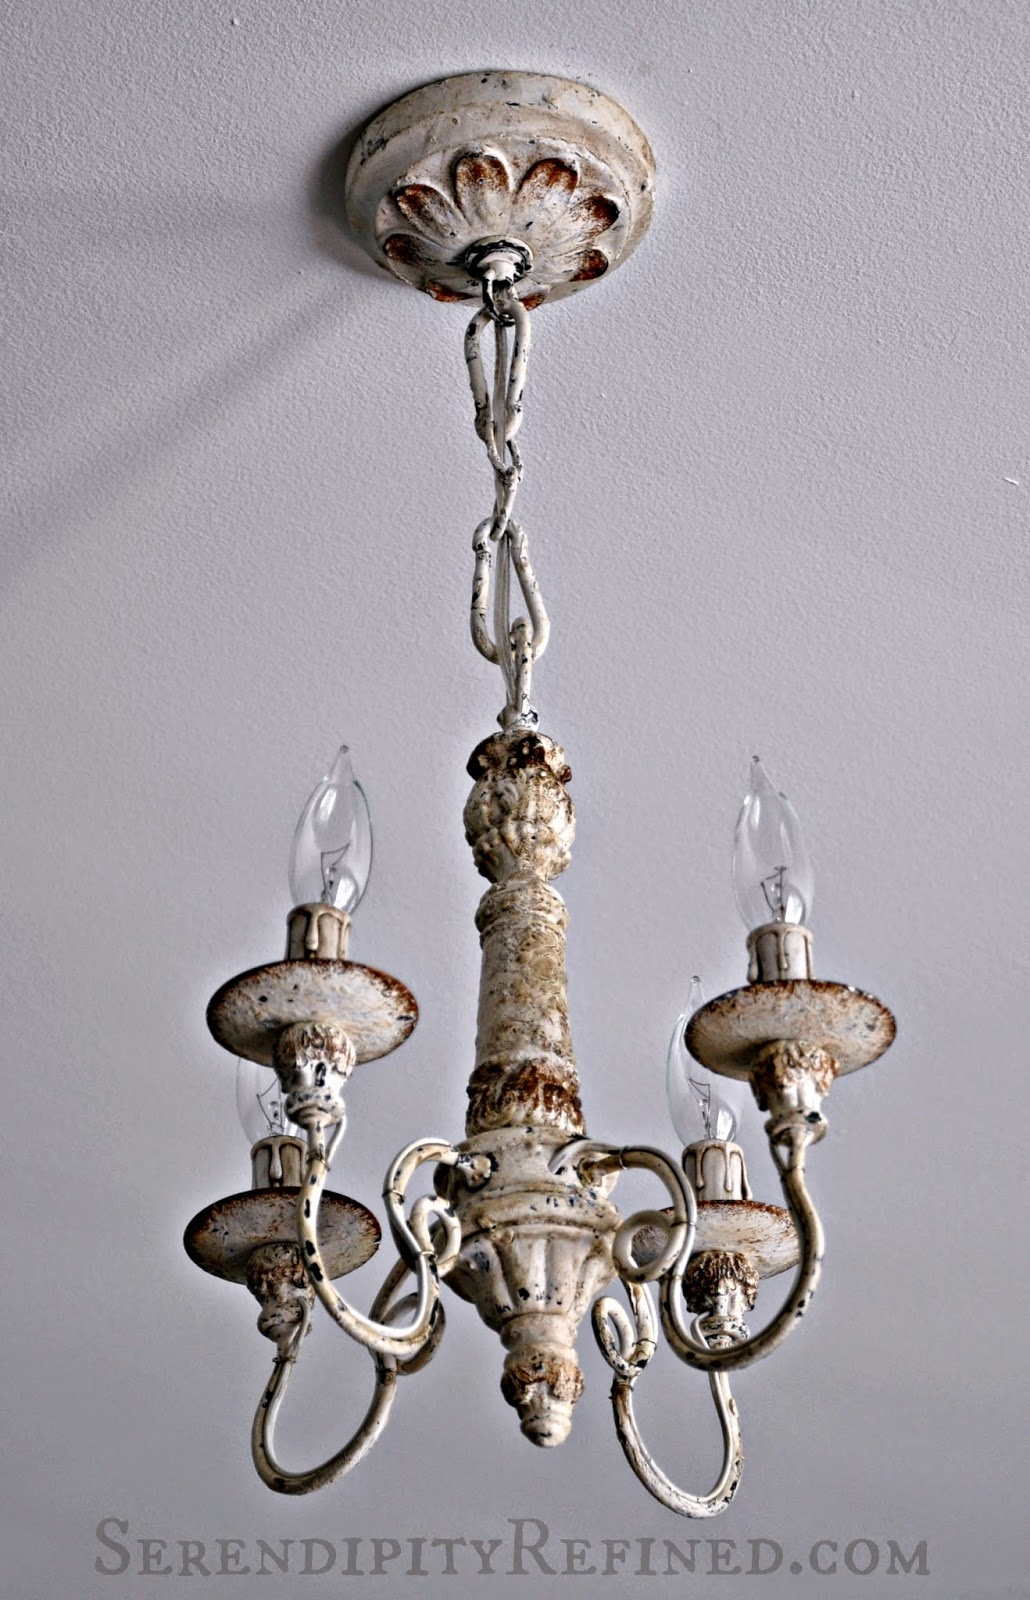 country dining room lighting | Serendipity Refined Blog: French Country Light Fixtures ...